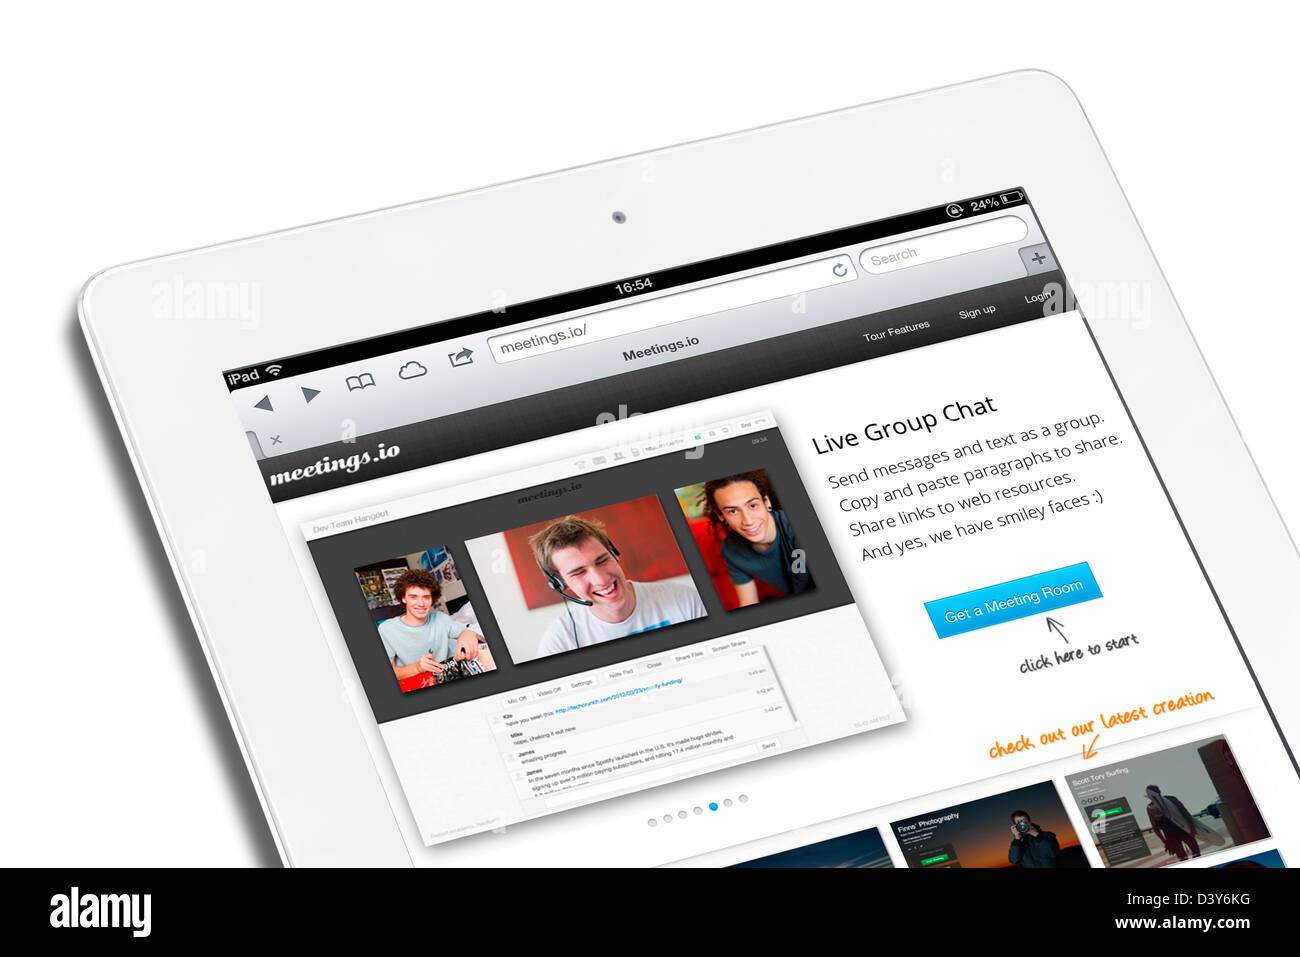 The meetings.io website on a 4th generation iPad - Stock Image